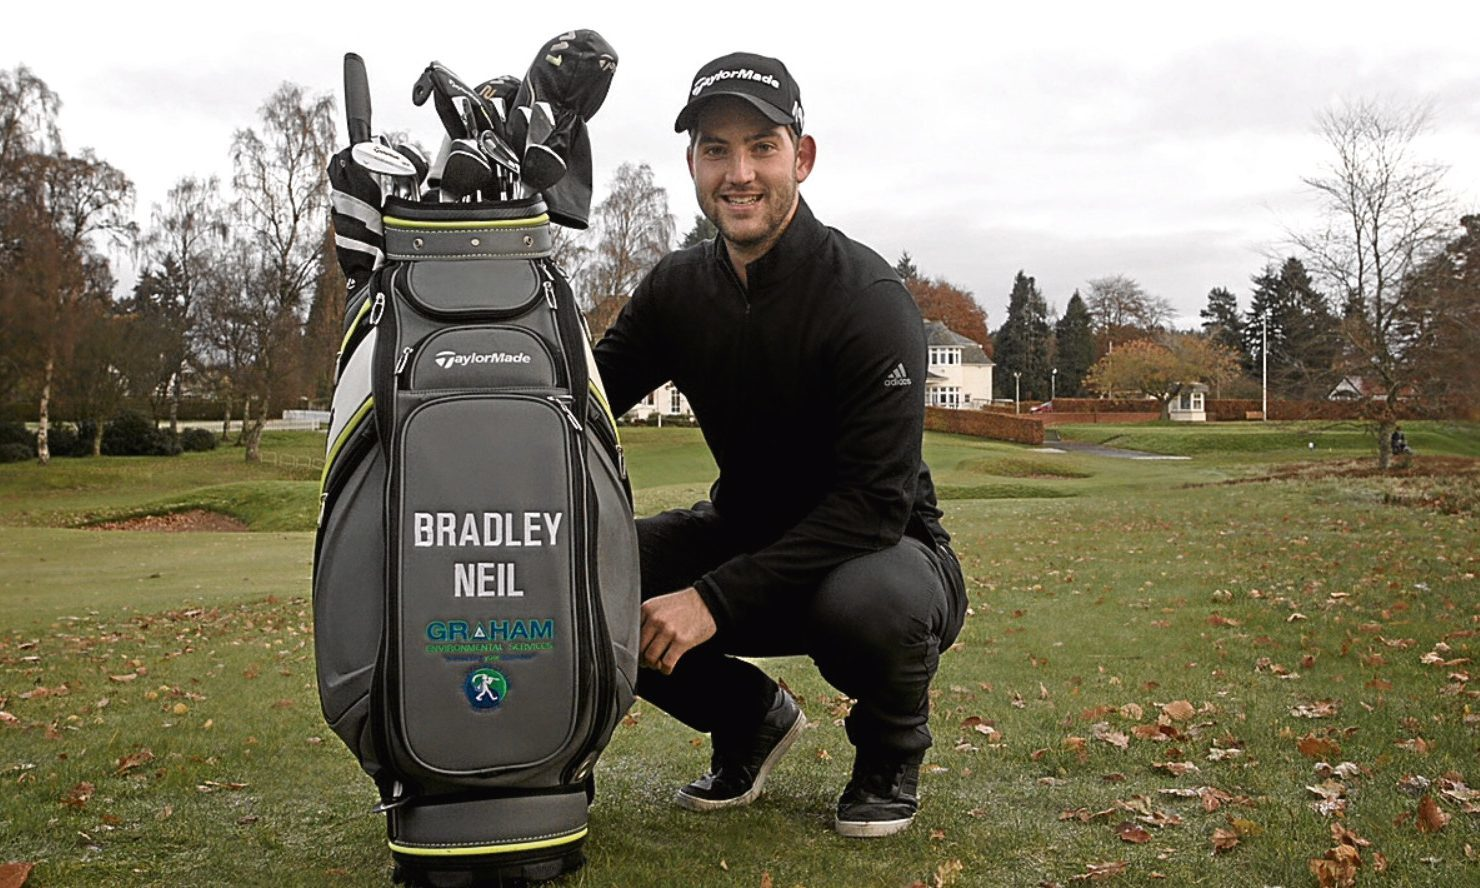 Perthshire firm Graham Environmental Services are sponsoring Bradley Neil's bag for the next two years.